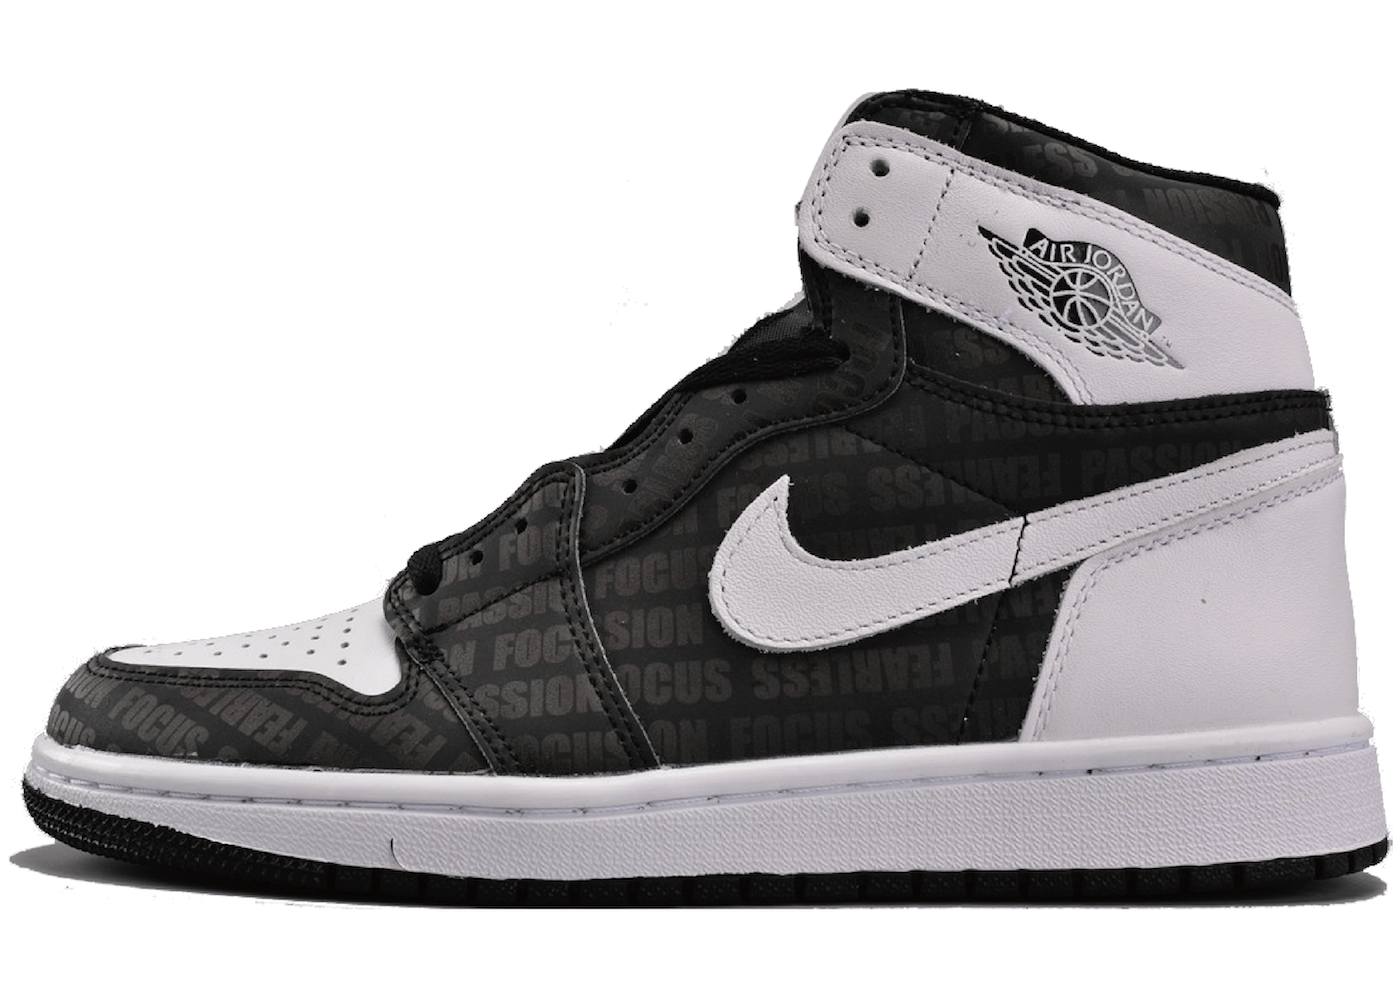 Nike Air Jordan 1 Retro High RE2PECT (Derek Jeter)の写真